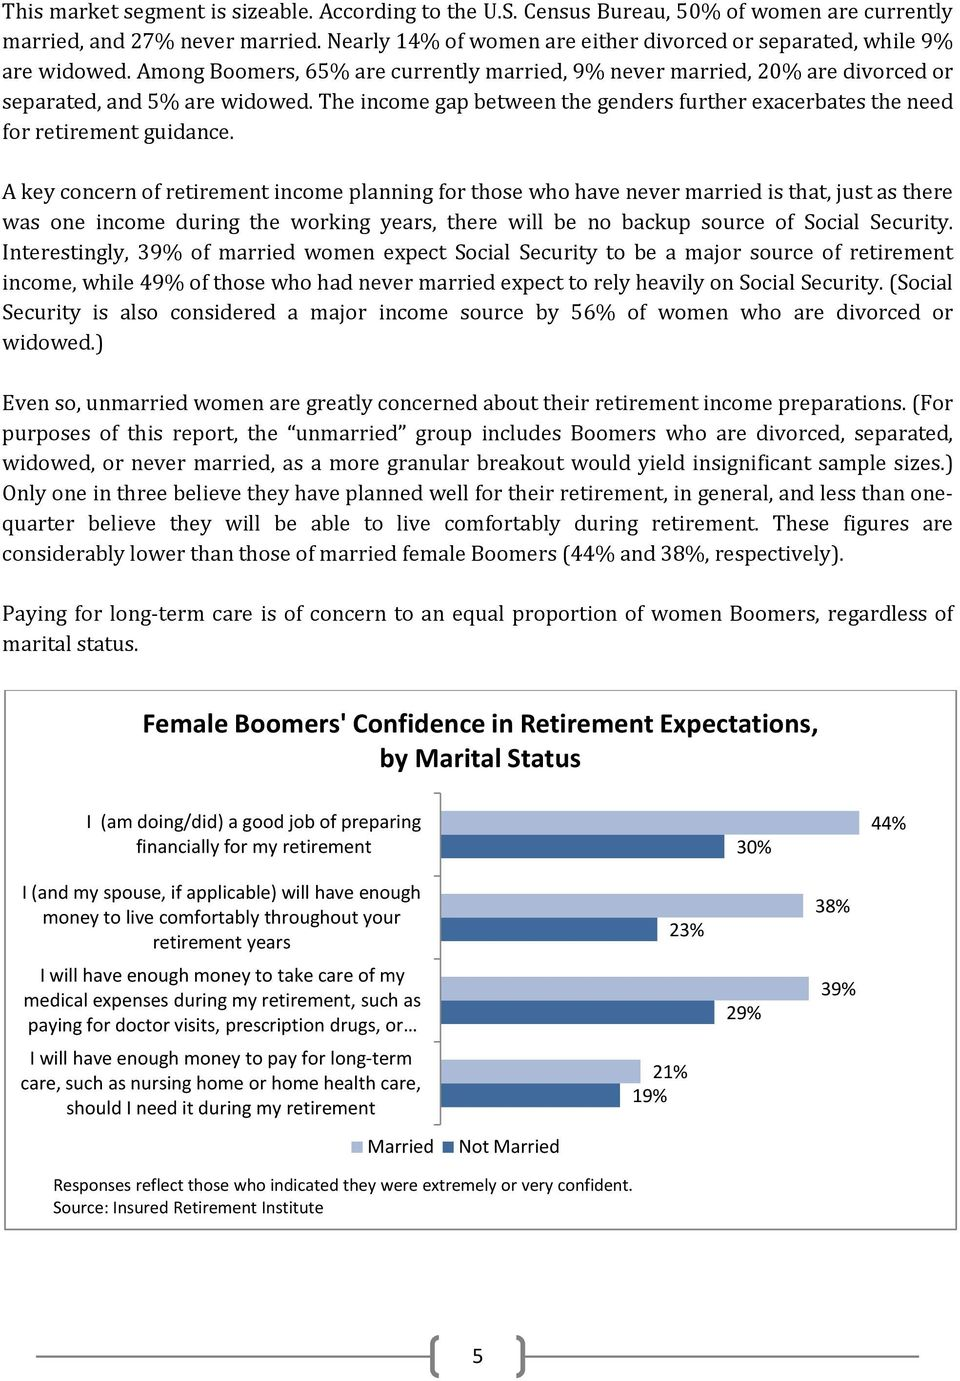 The income gap between the genders further exacerbates the need for retirement guidance.